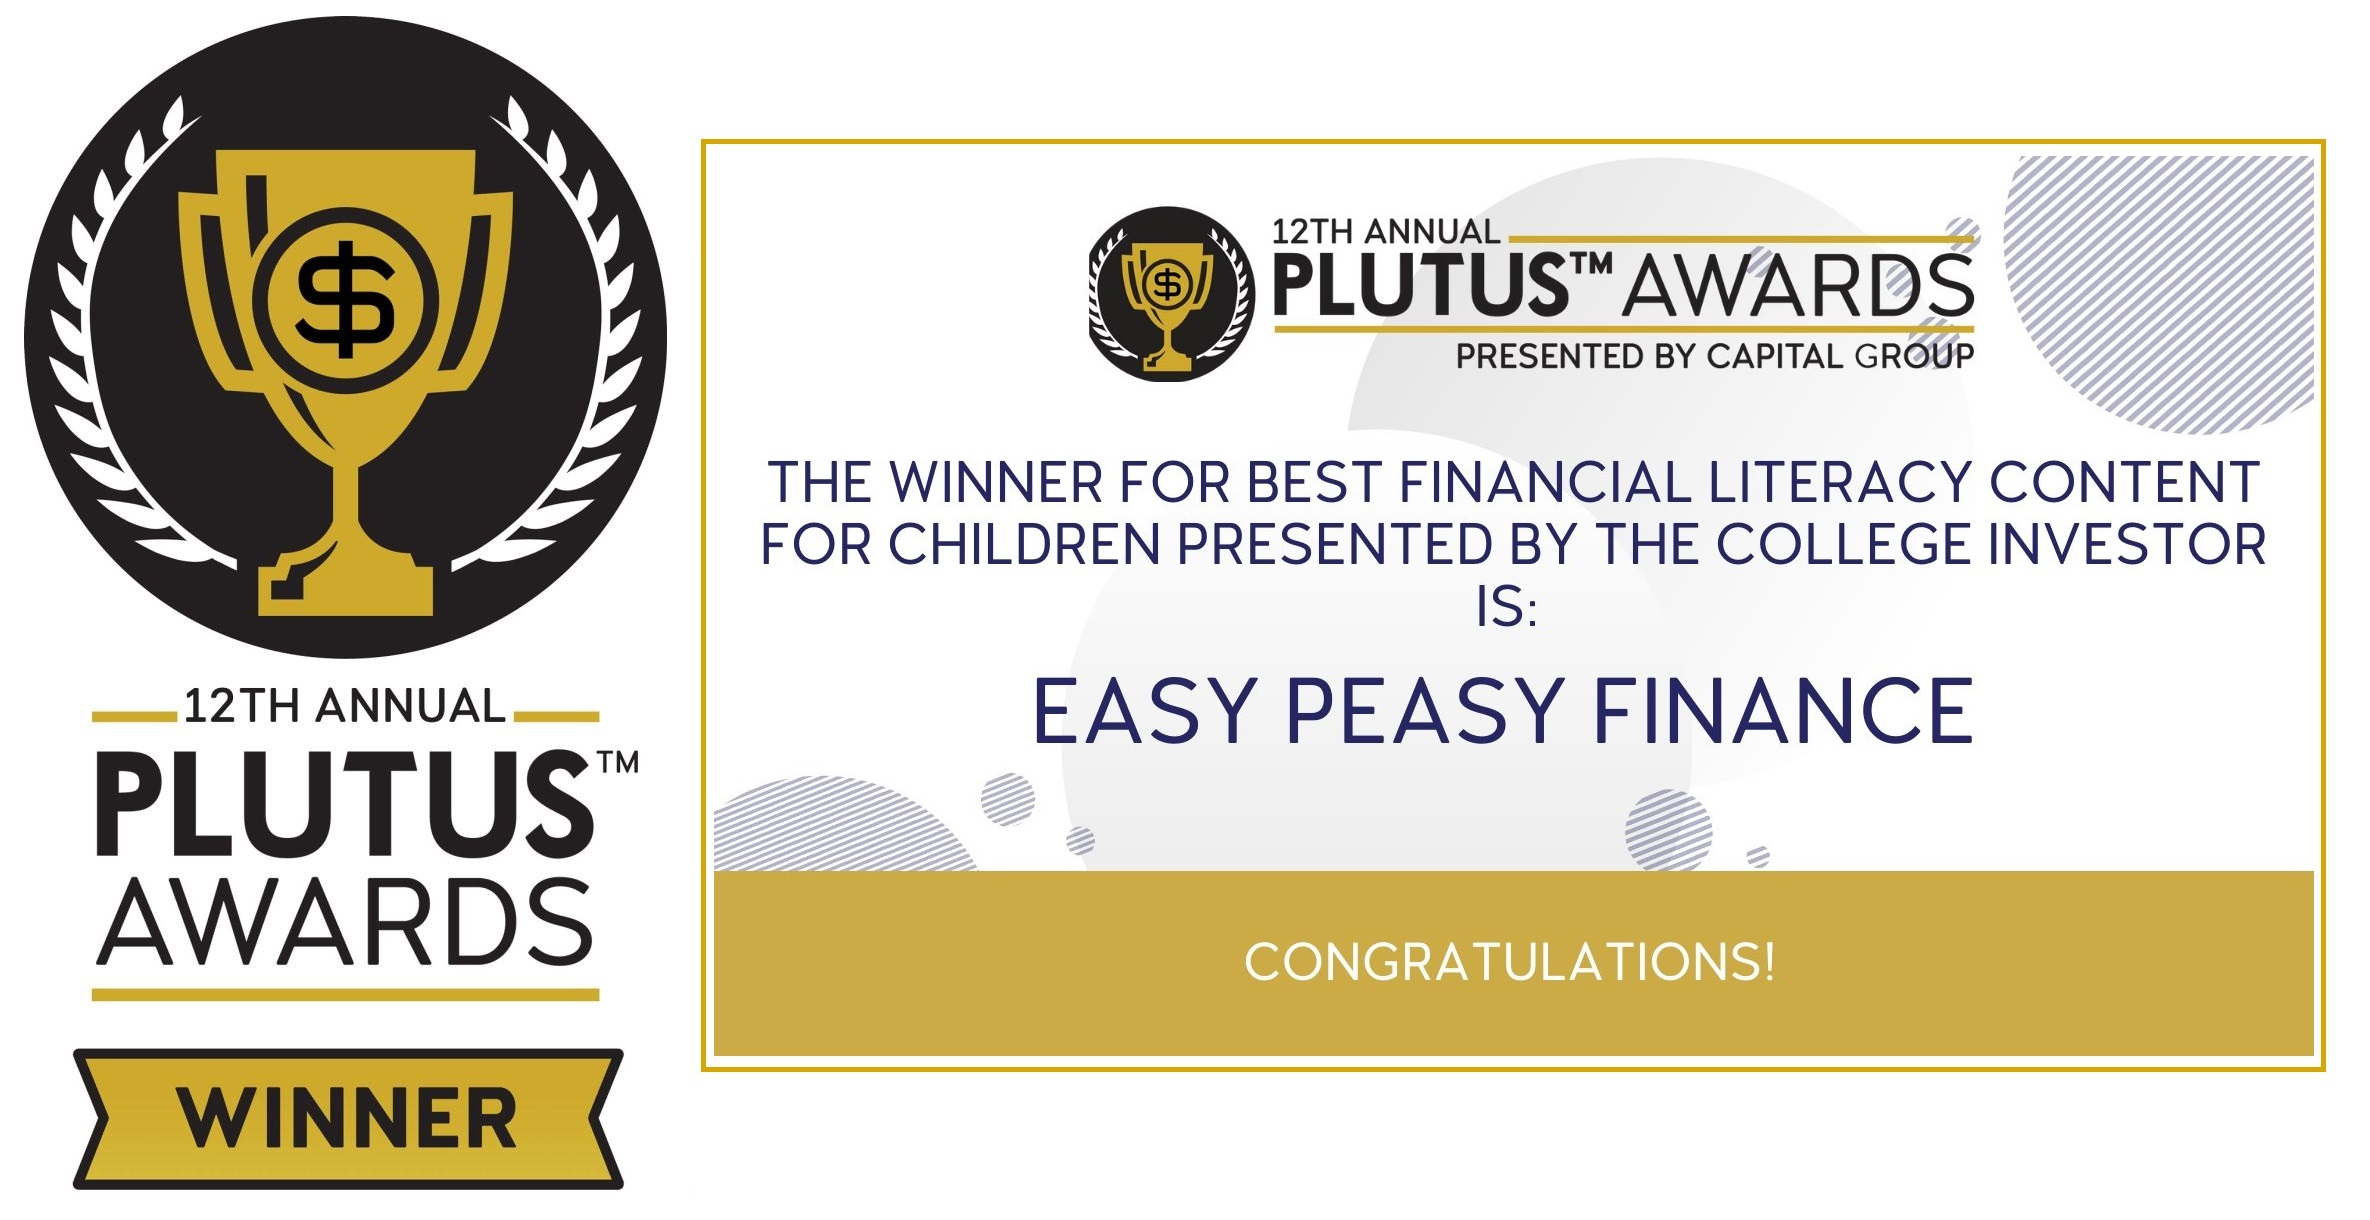 2021 Plutus Awards for the Best Financial Literacy Content for Children category